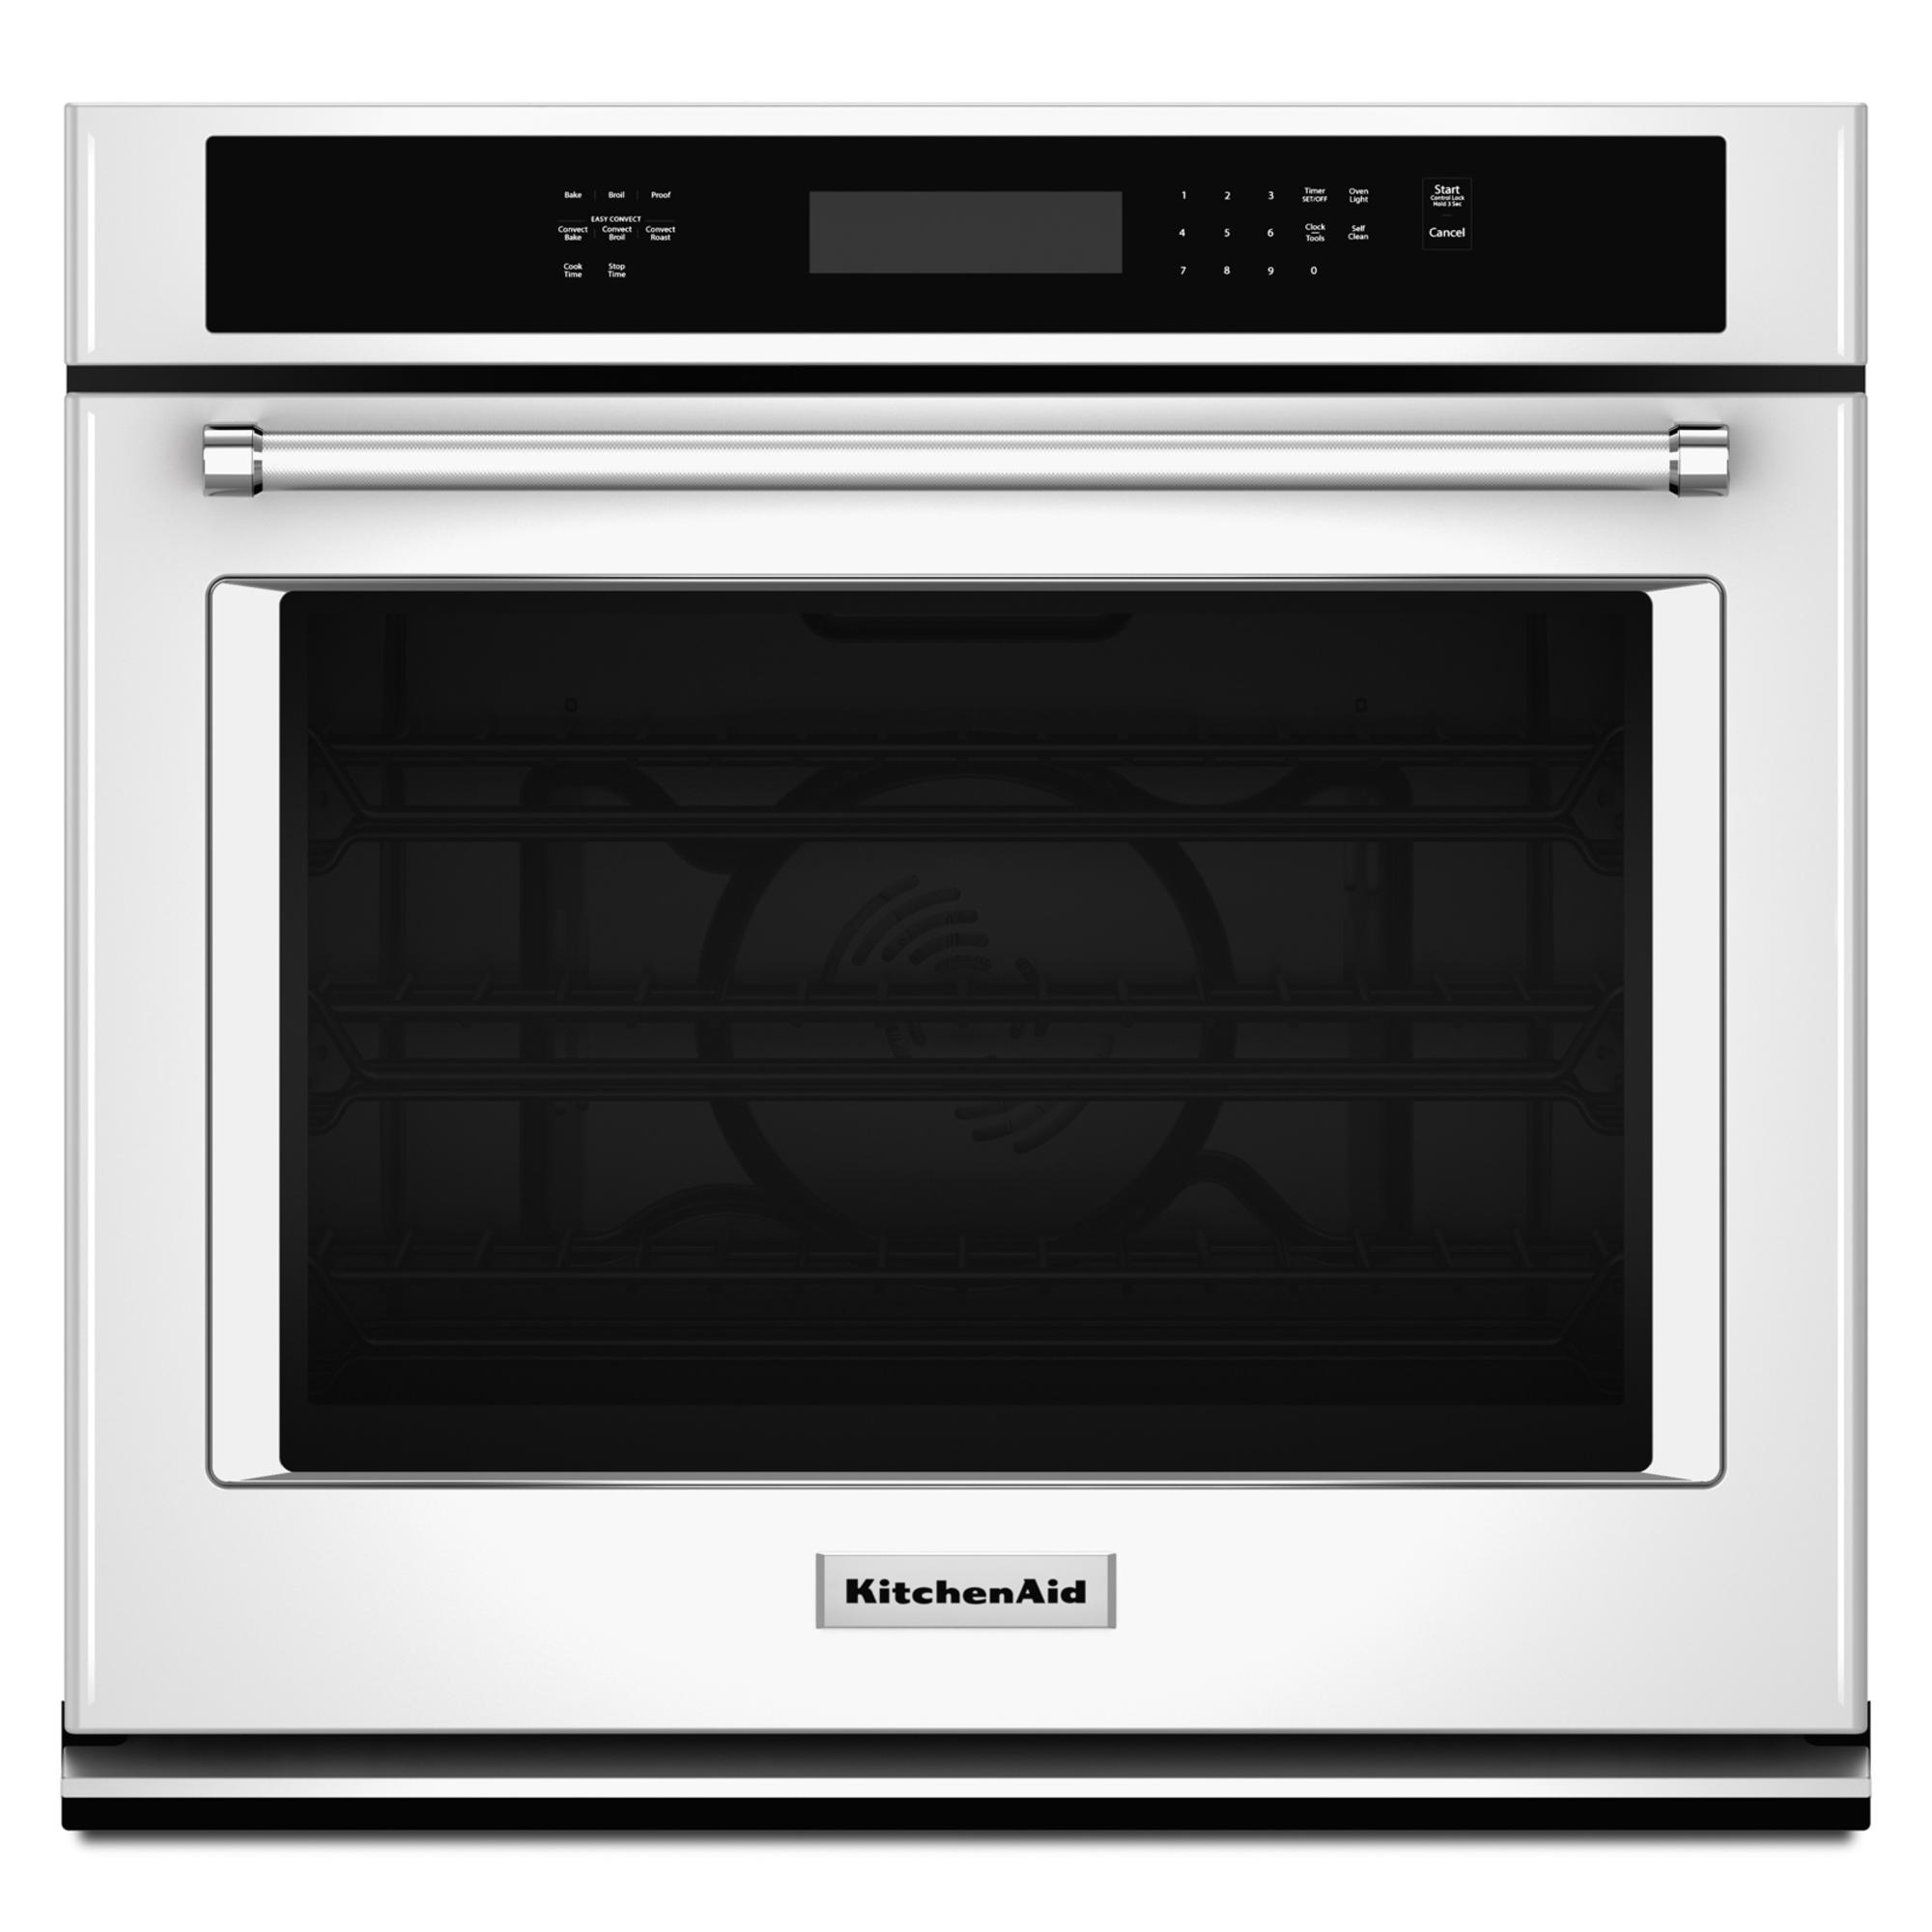 KitchenAid KOSE507EWH 4.3 cu. ft. Single Wall Oven w/ Even-Heat™ True Convection - White